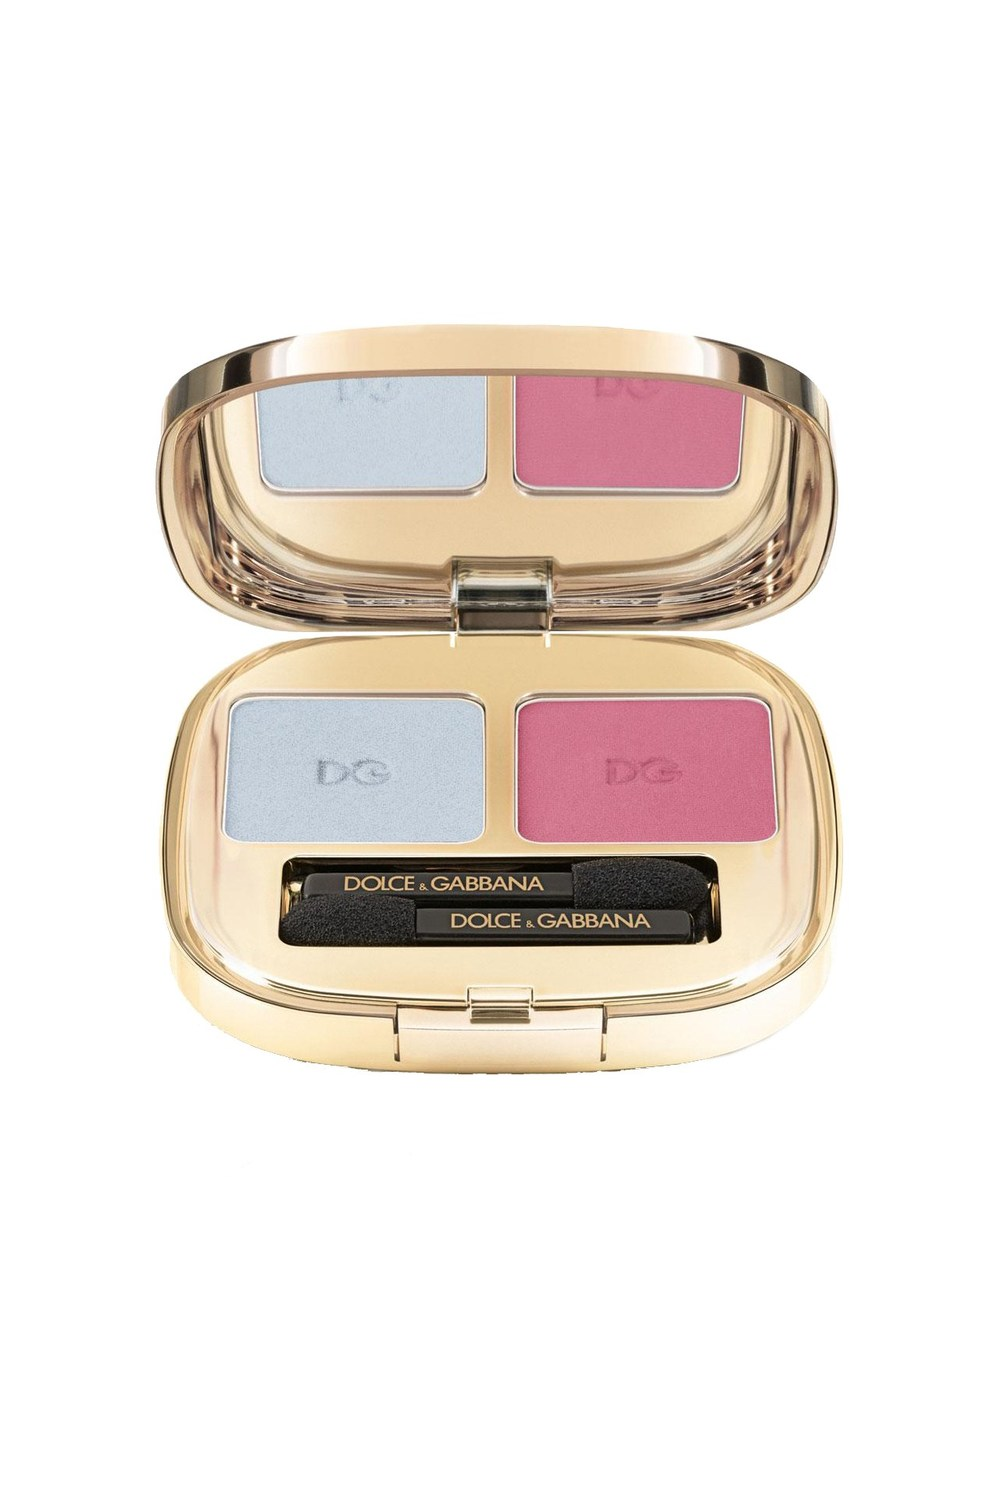 Dolce & Gabbana Smooth Eye Duo